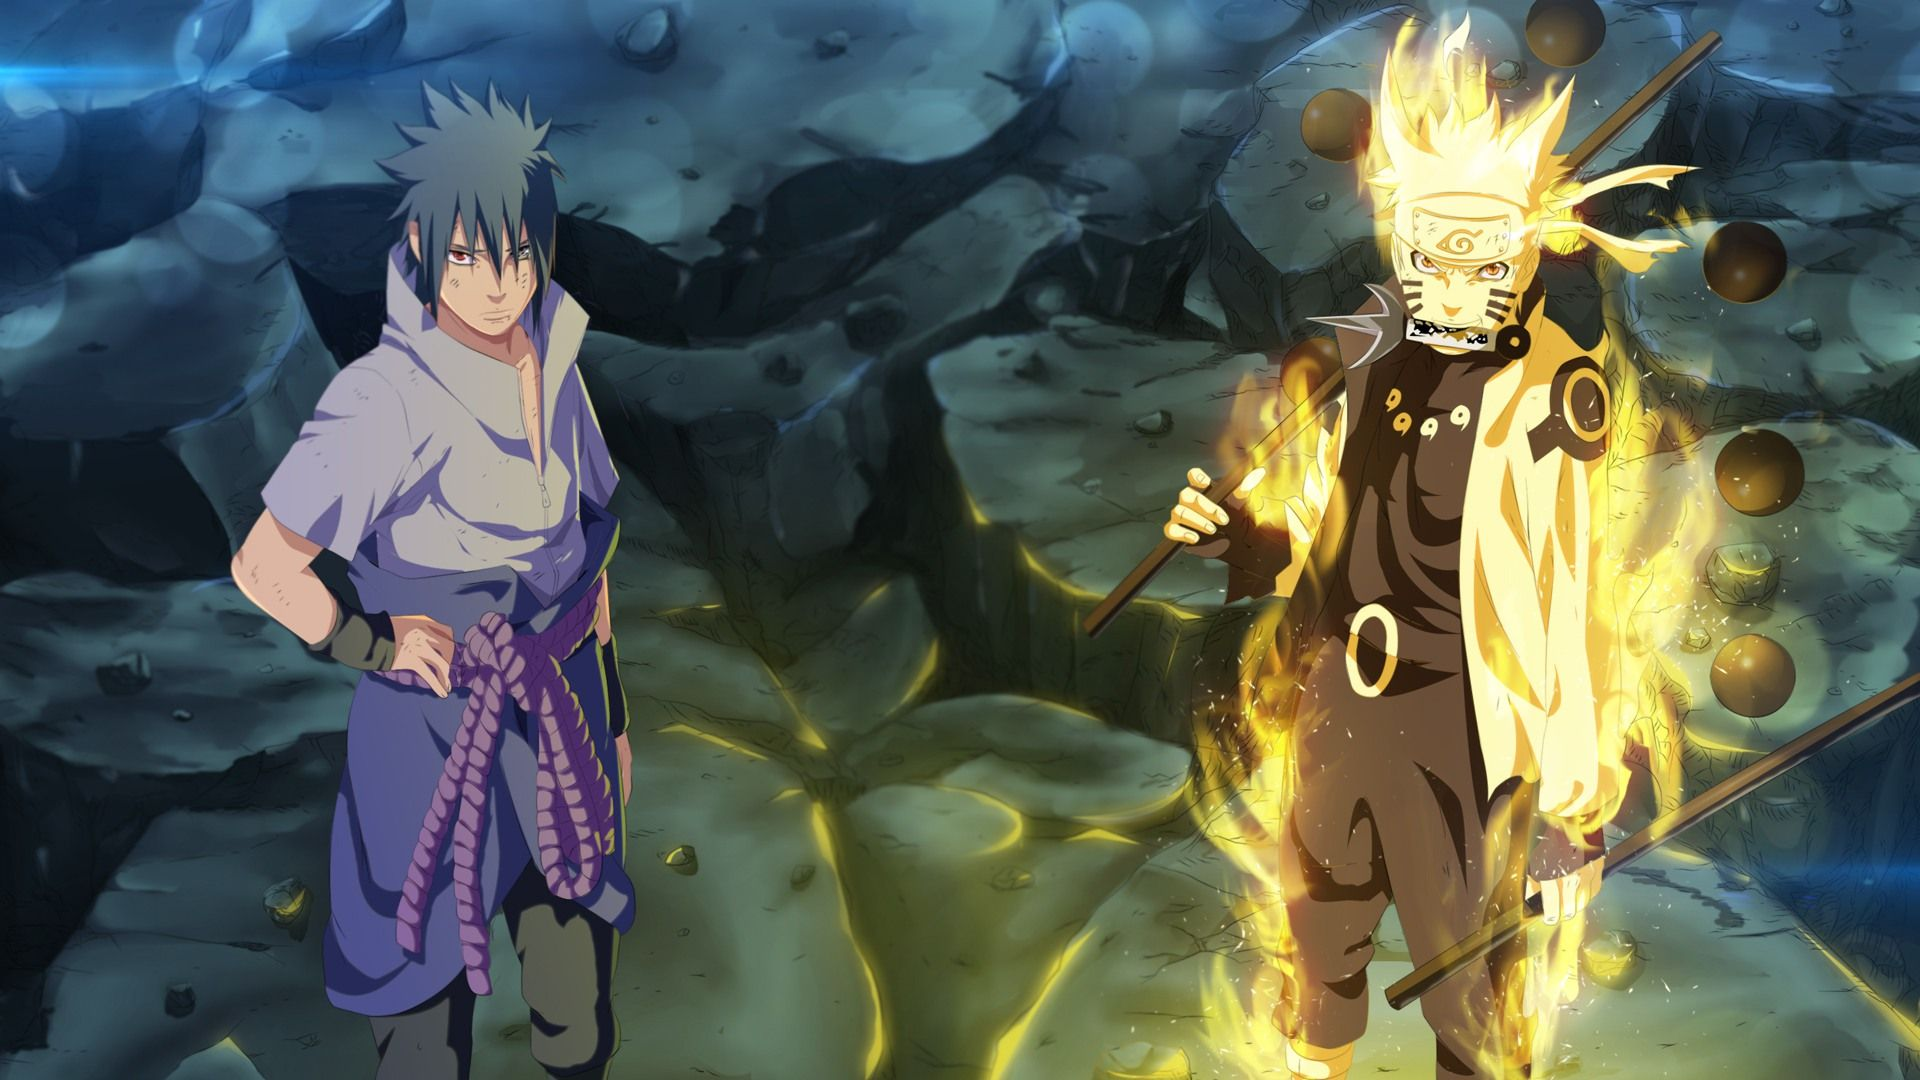 Naruto Six Paths Wallpapers Naruto Dan Sasuke Wallpaper Naruto Shippuden Naruto Shippuden Anime